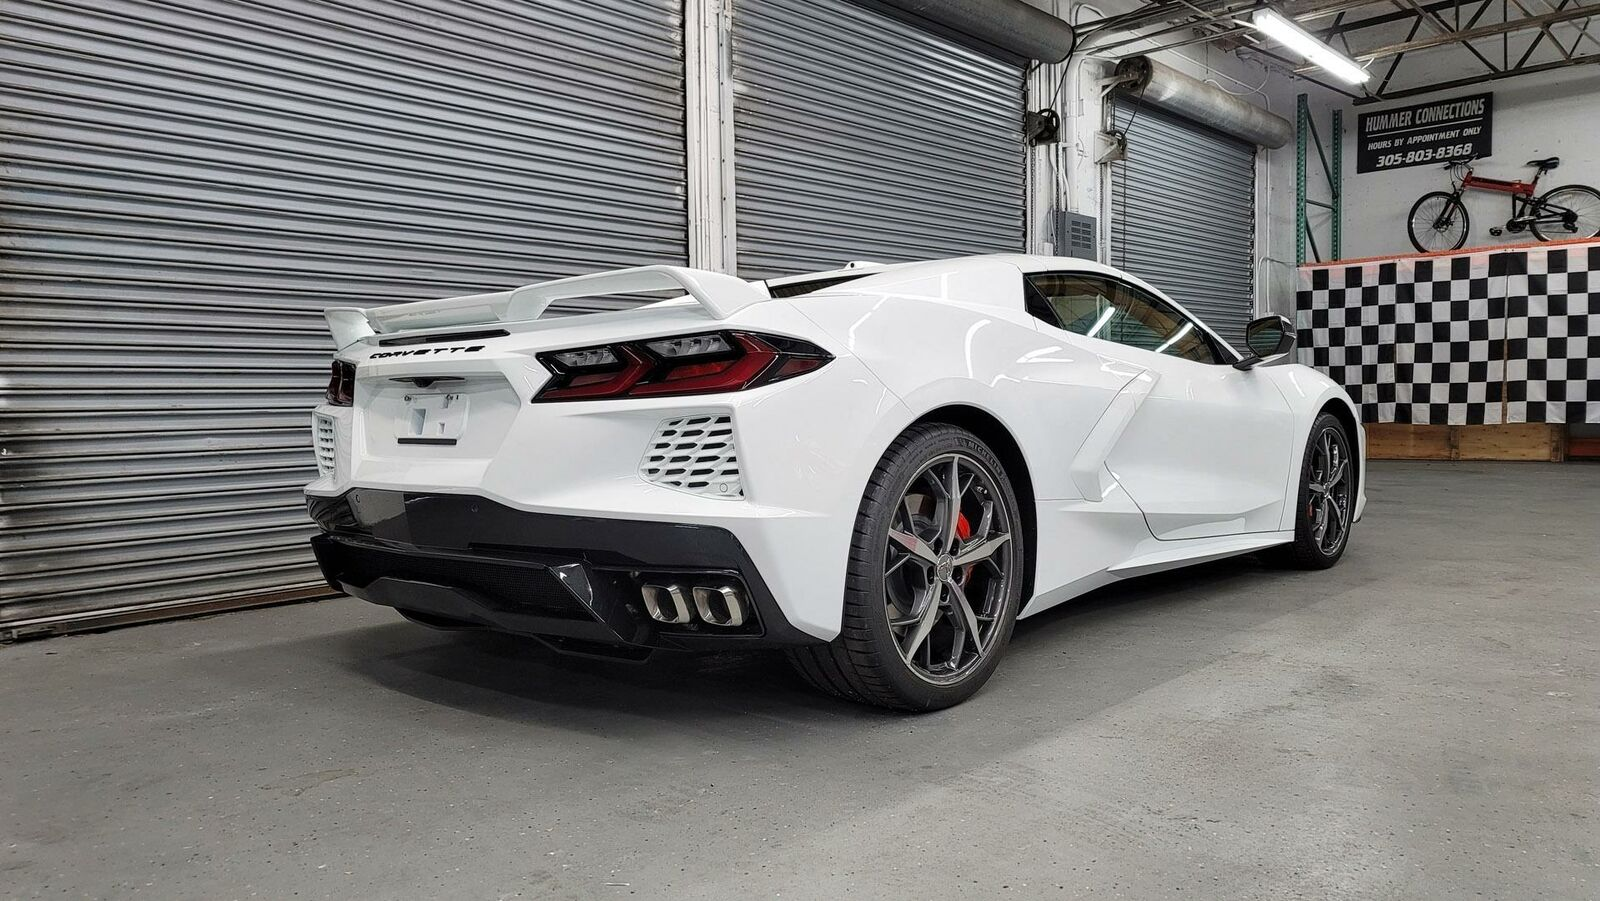 2021 White Chevrolet Corvette  3LT | C7 Corvette Photo 10